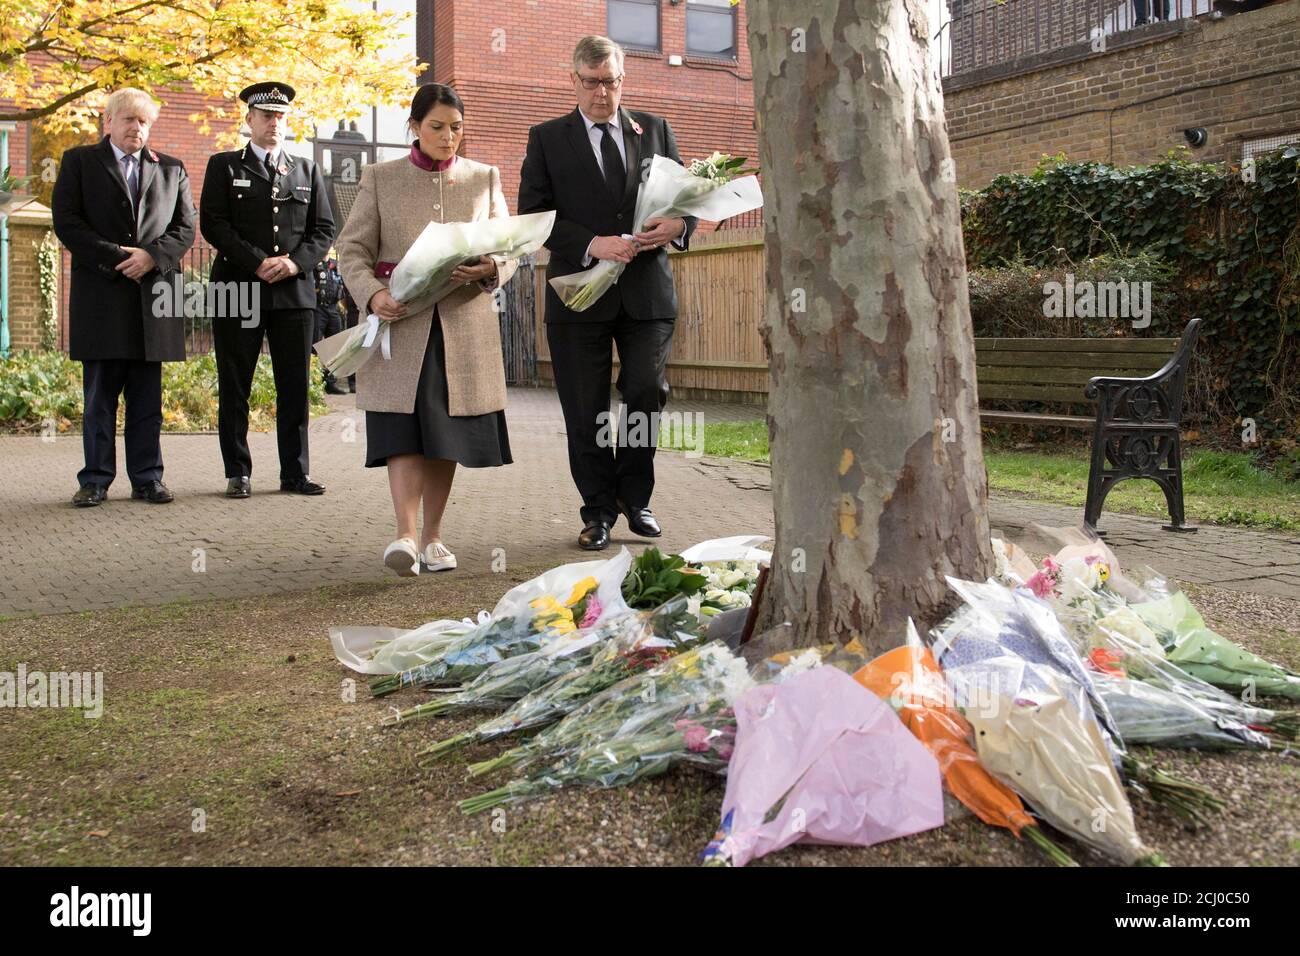 Prime Minister Boris Johnson stands with the Chief Constable of Essex Police, Ben-Julian Harrington, as Home Secretary Priti Patel lays flowers during a visit to Thurrock Council Offices in Grays, Britain, October 28, 2019. Stefan Rousseau/Pool via REUTERS Stock Photo